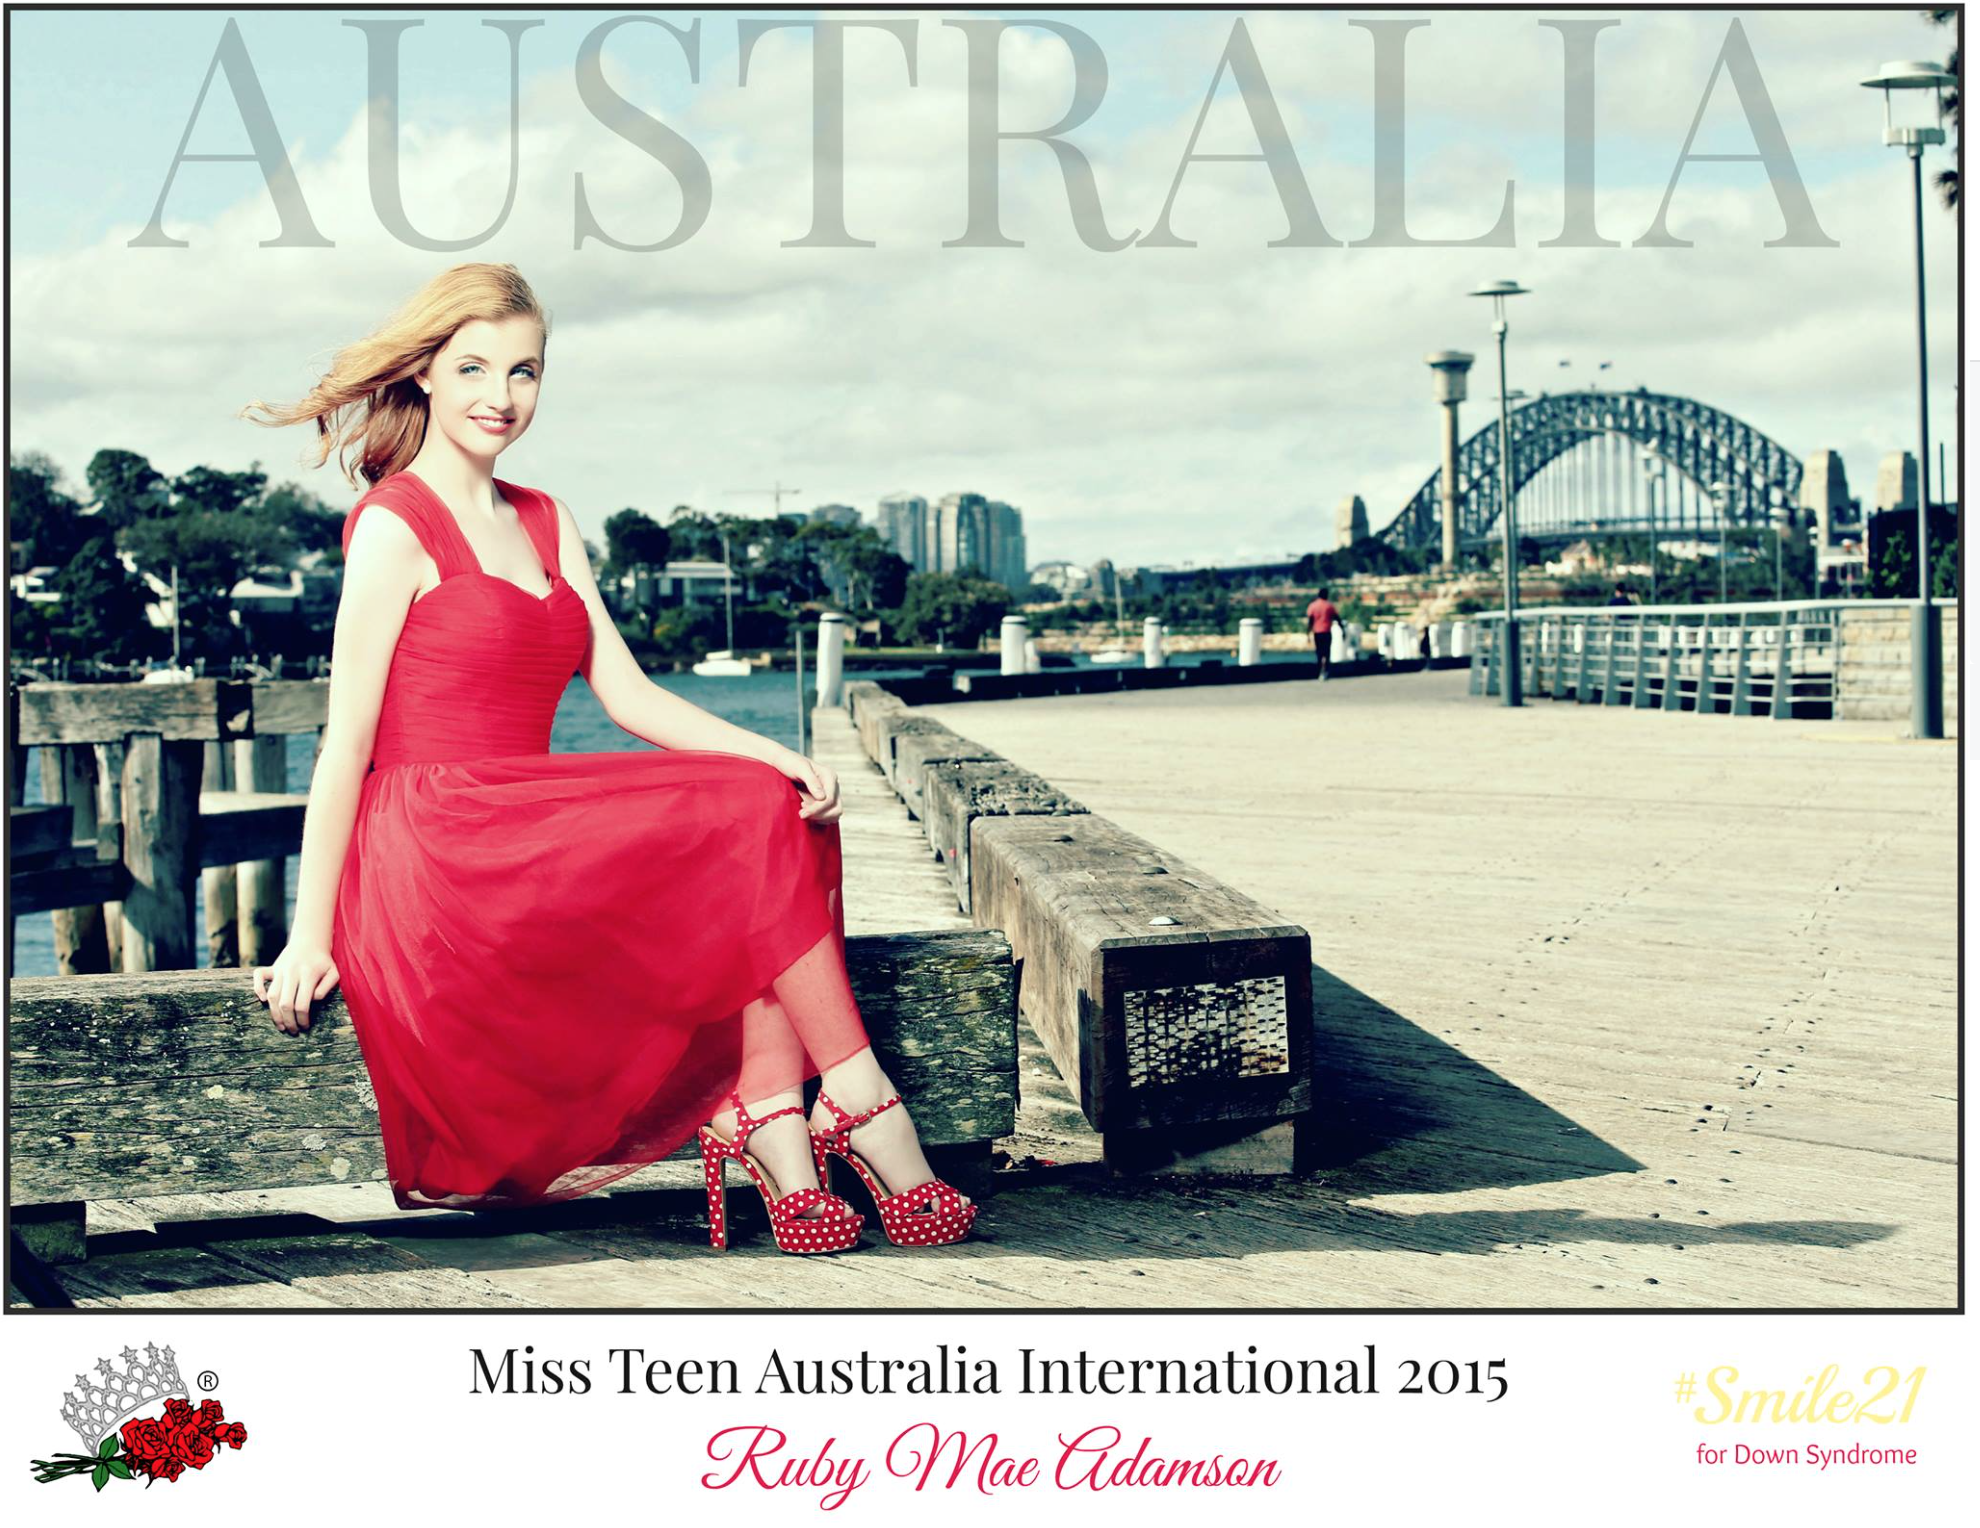 The Australian International Pageants